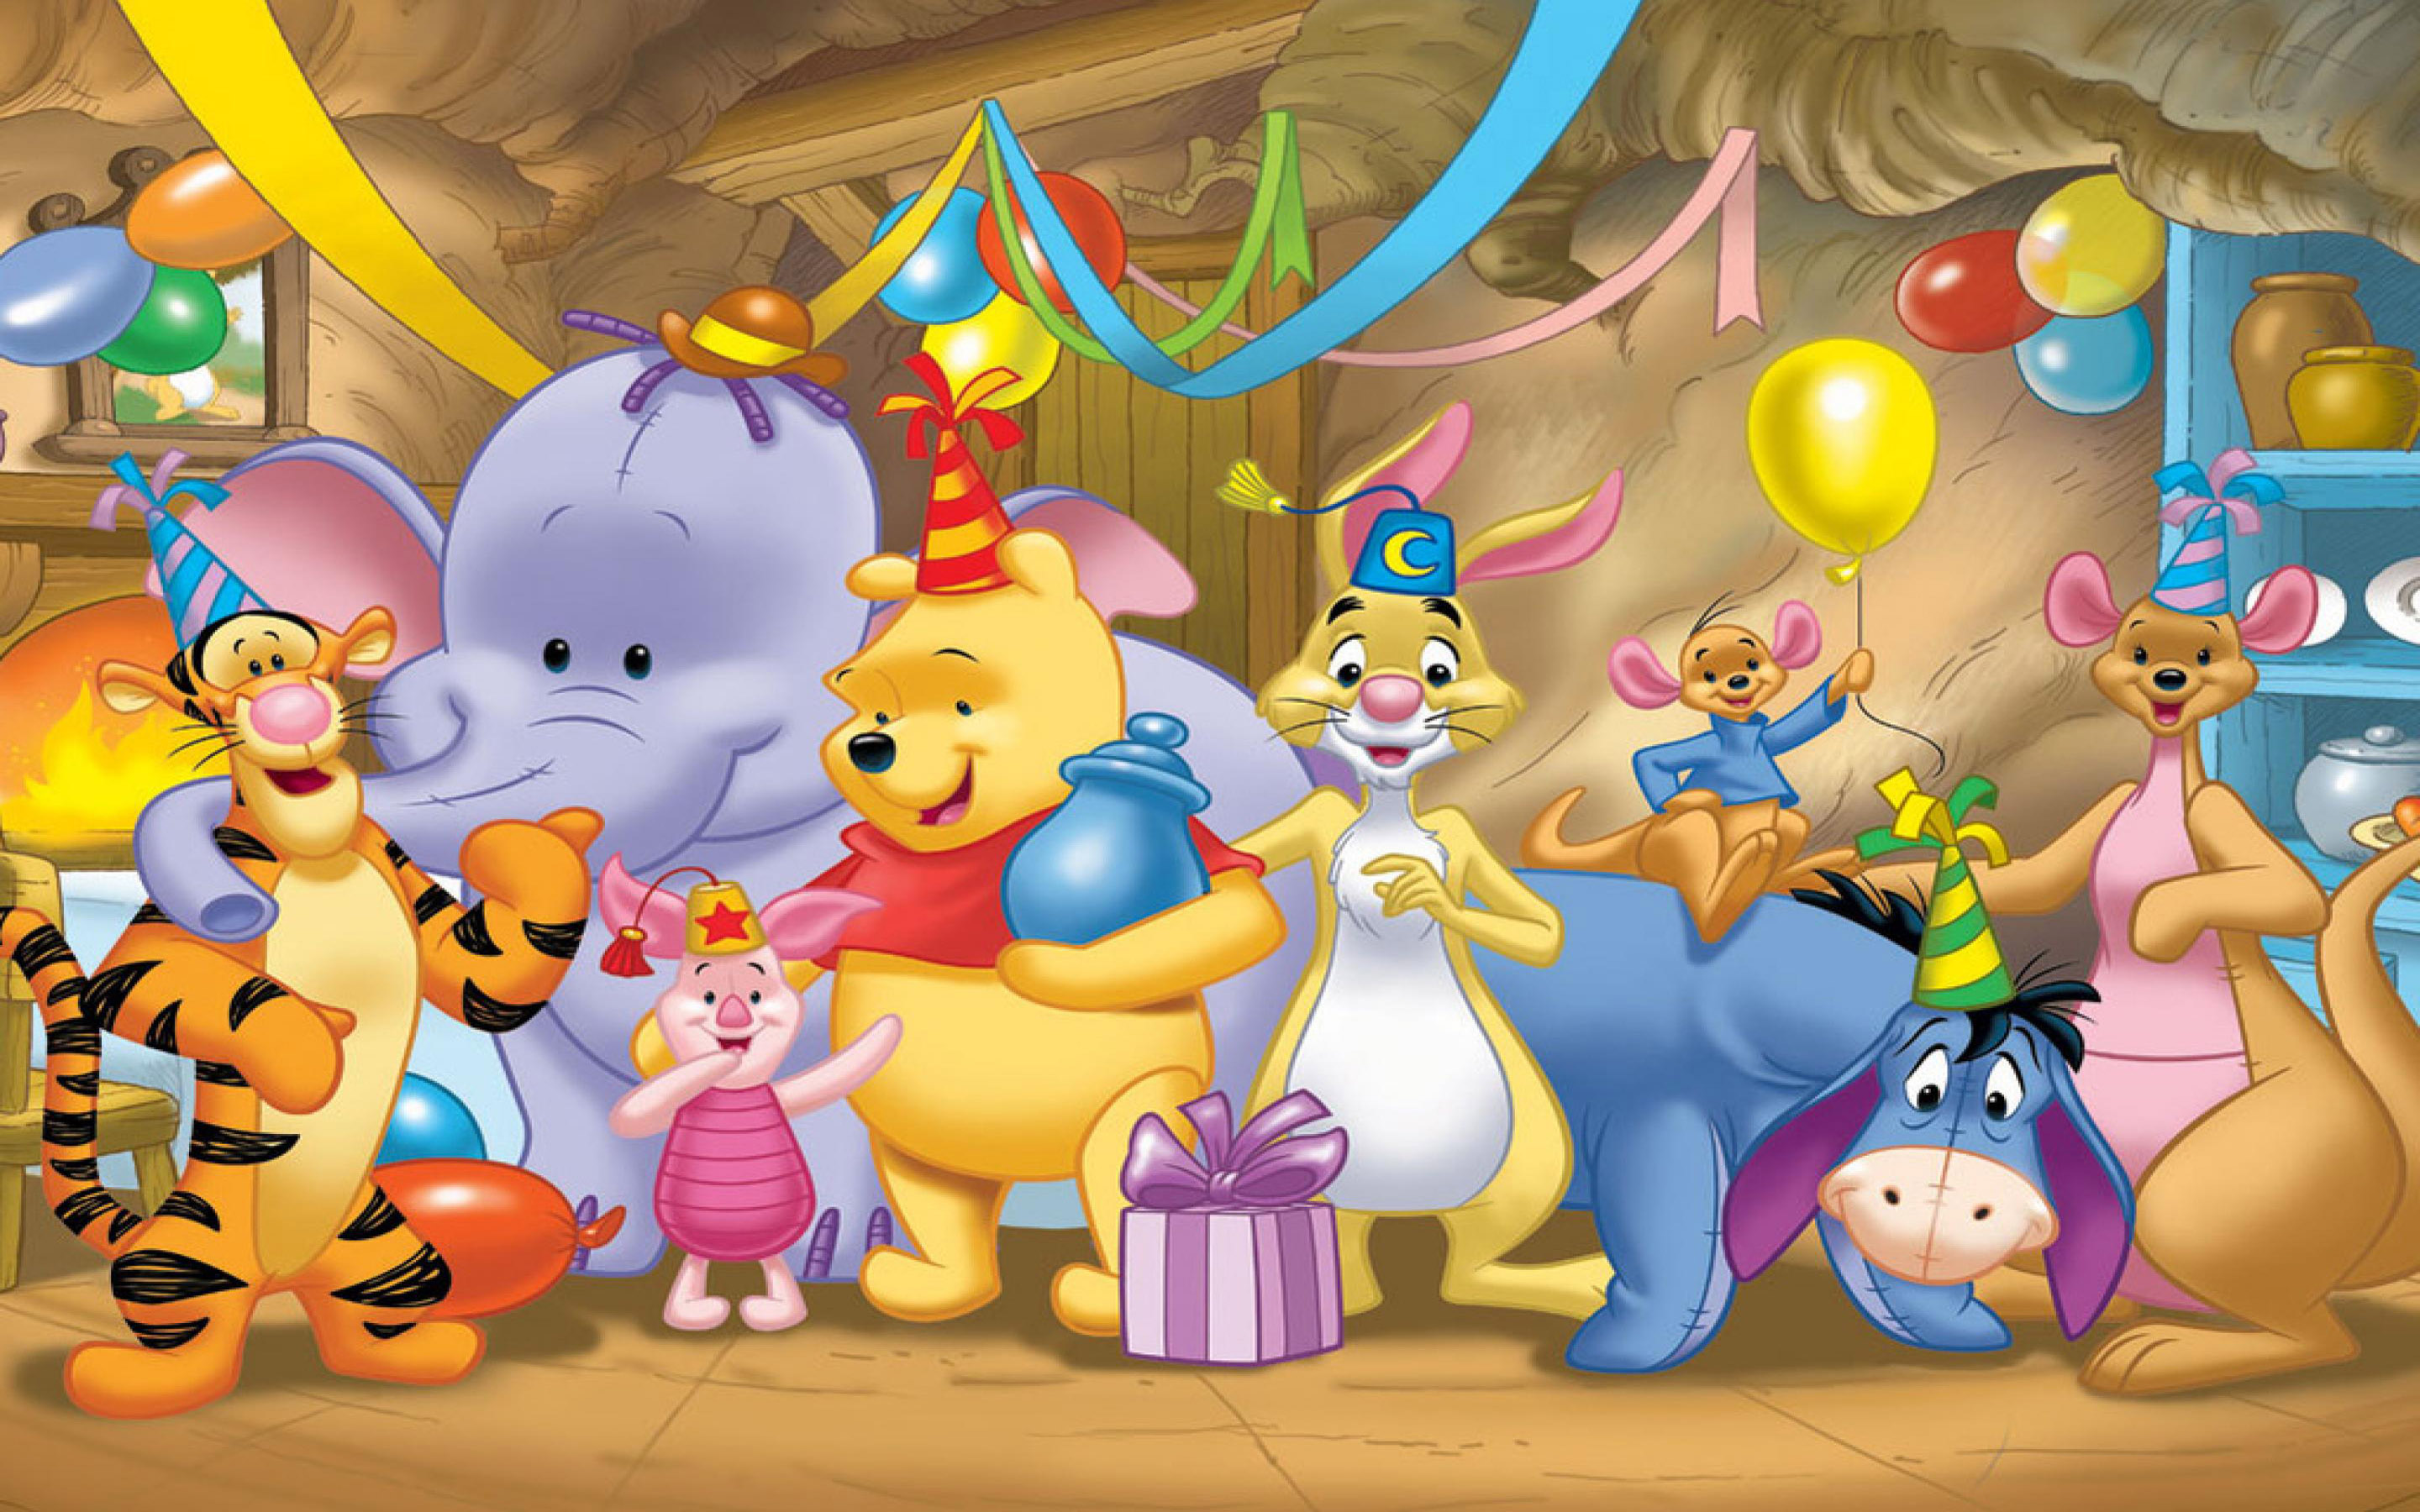 Cute Hug Wallpapers Free Download Winnie The Pooh Happy Birthday Celebration Birthday Gifts